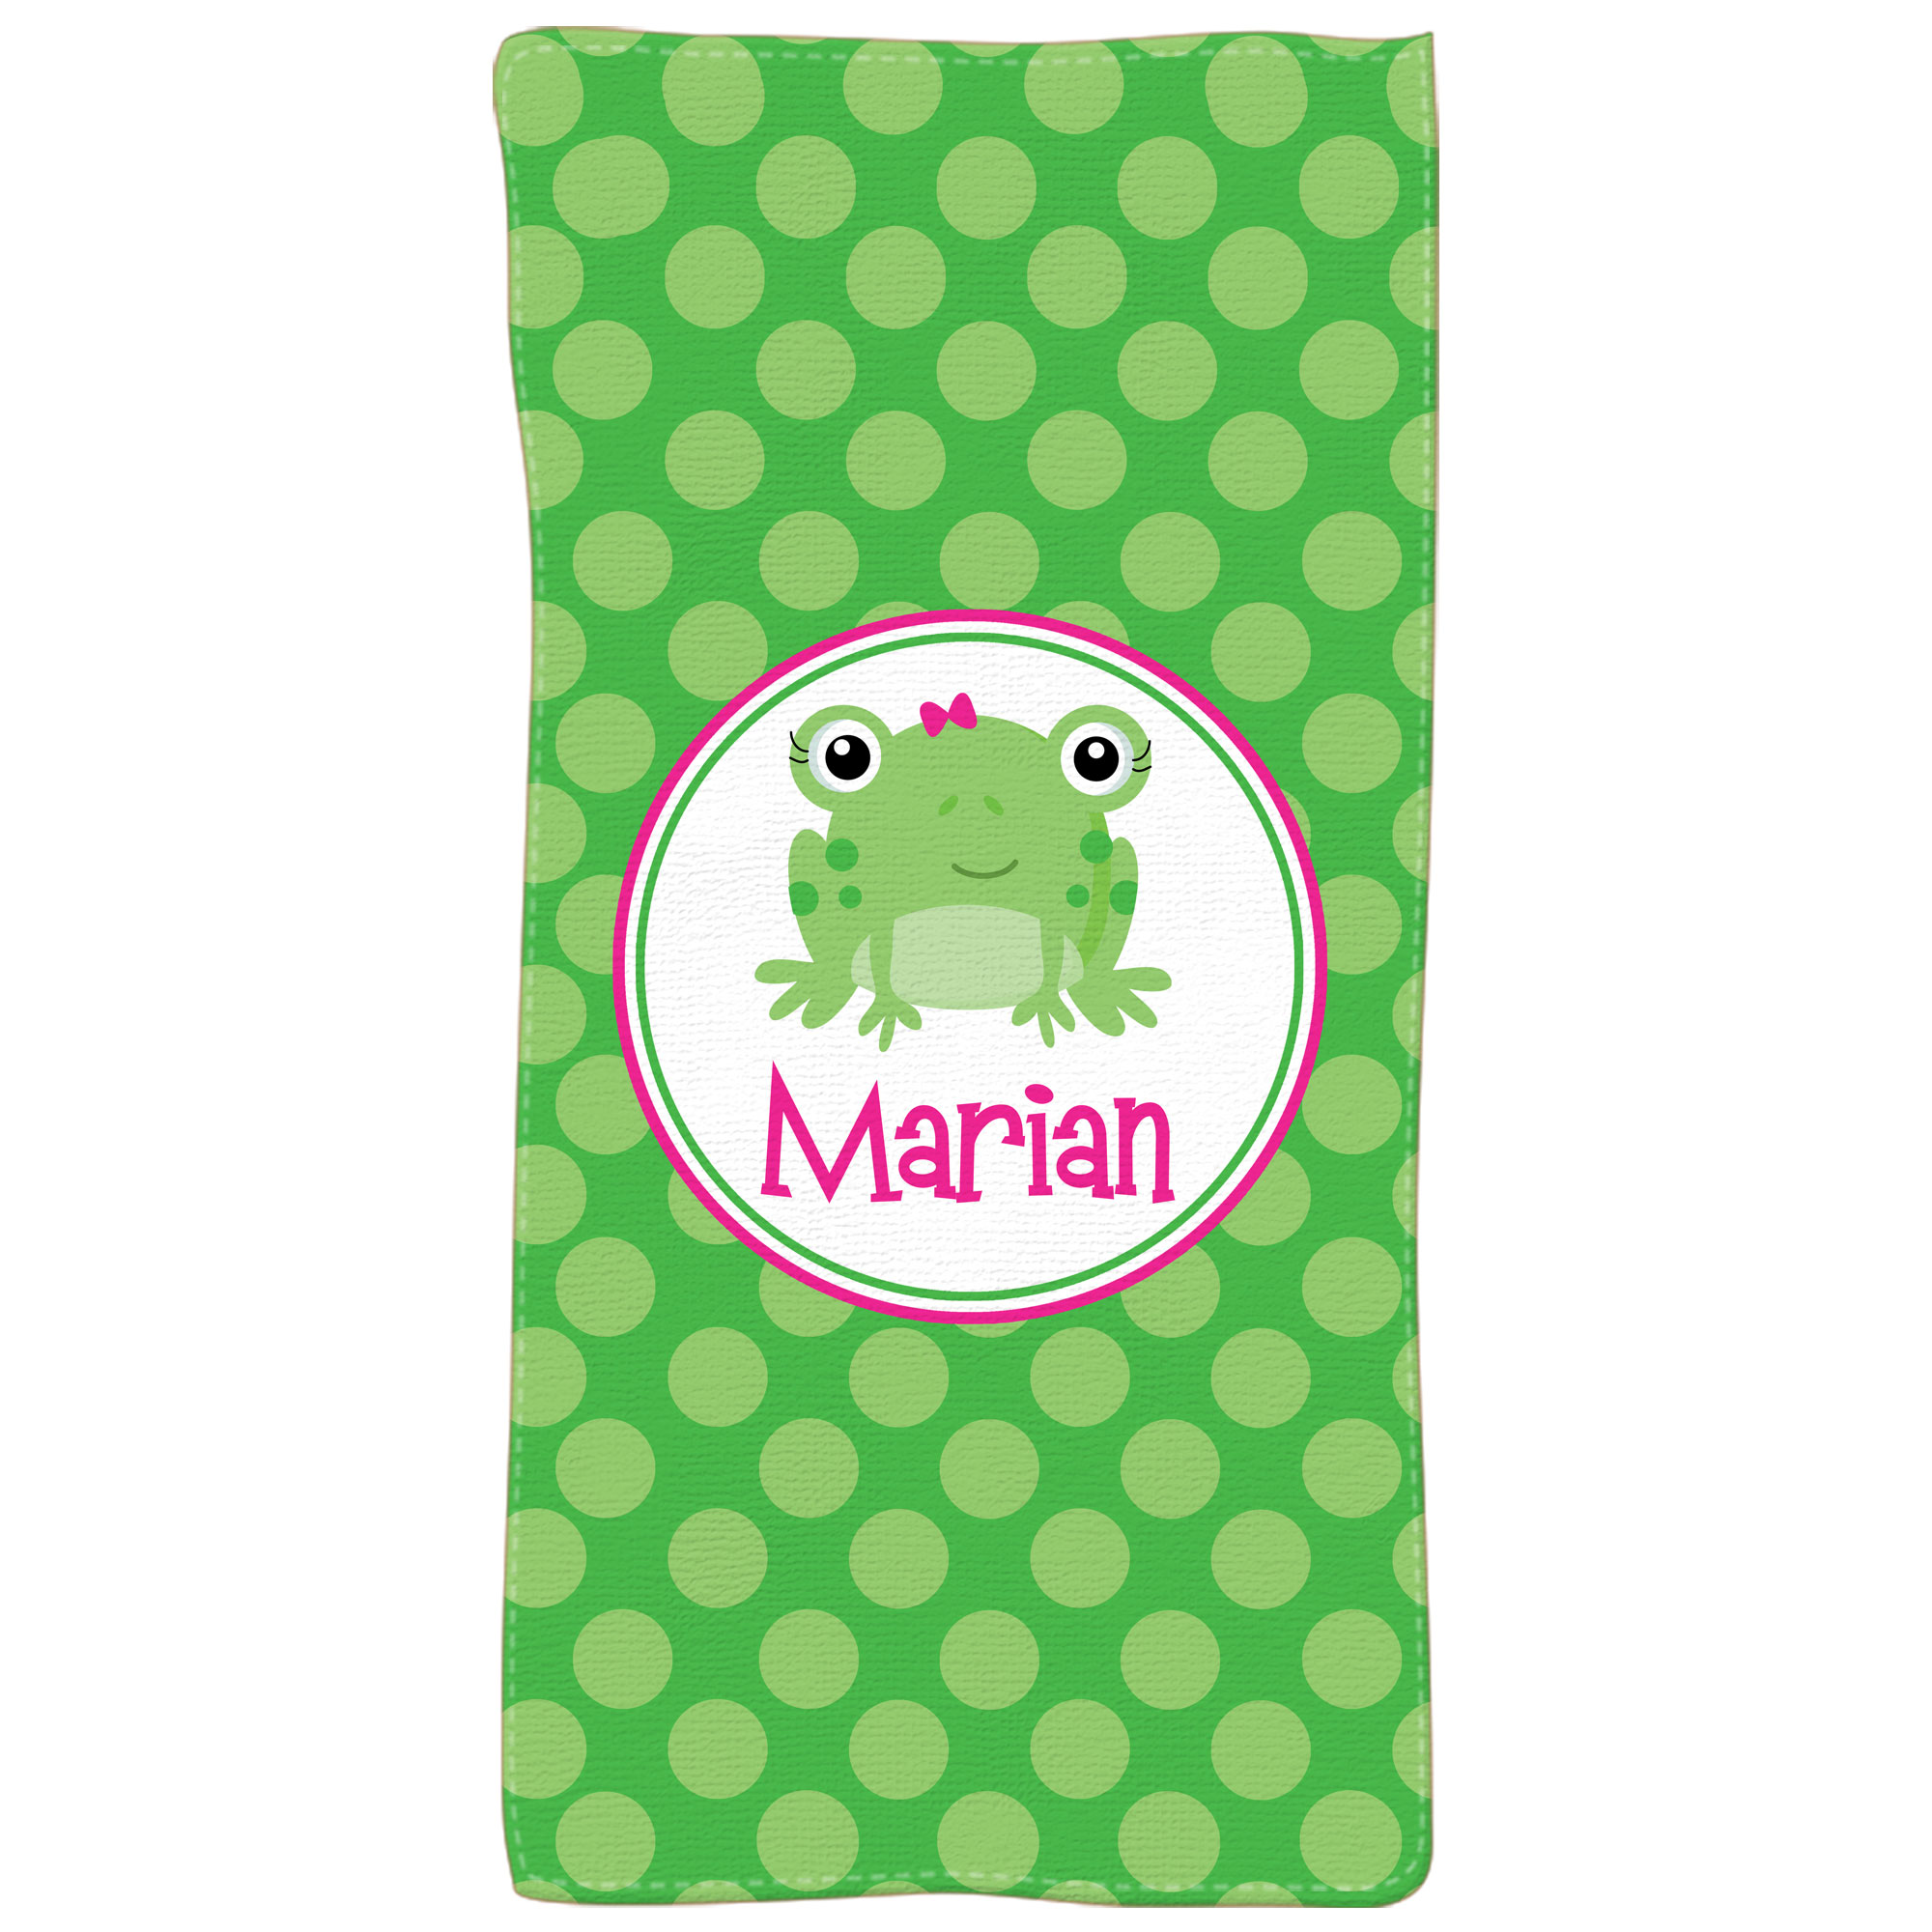 Personalized Beach Towel For Toddler: Personalized Bath Or